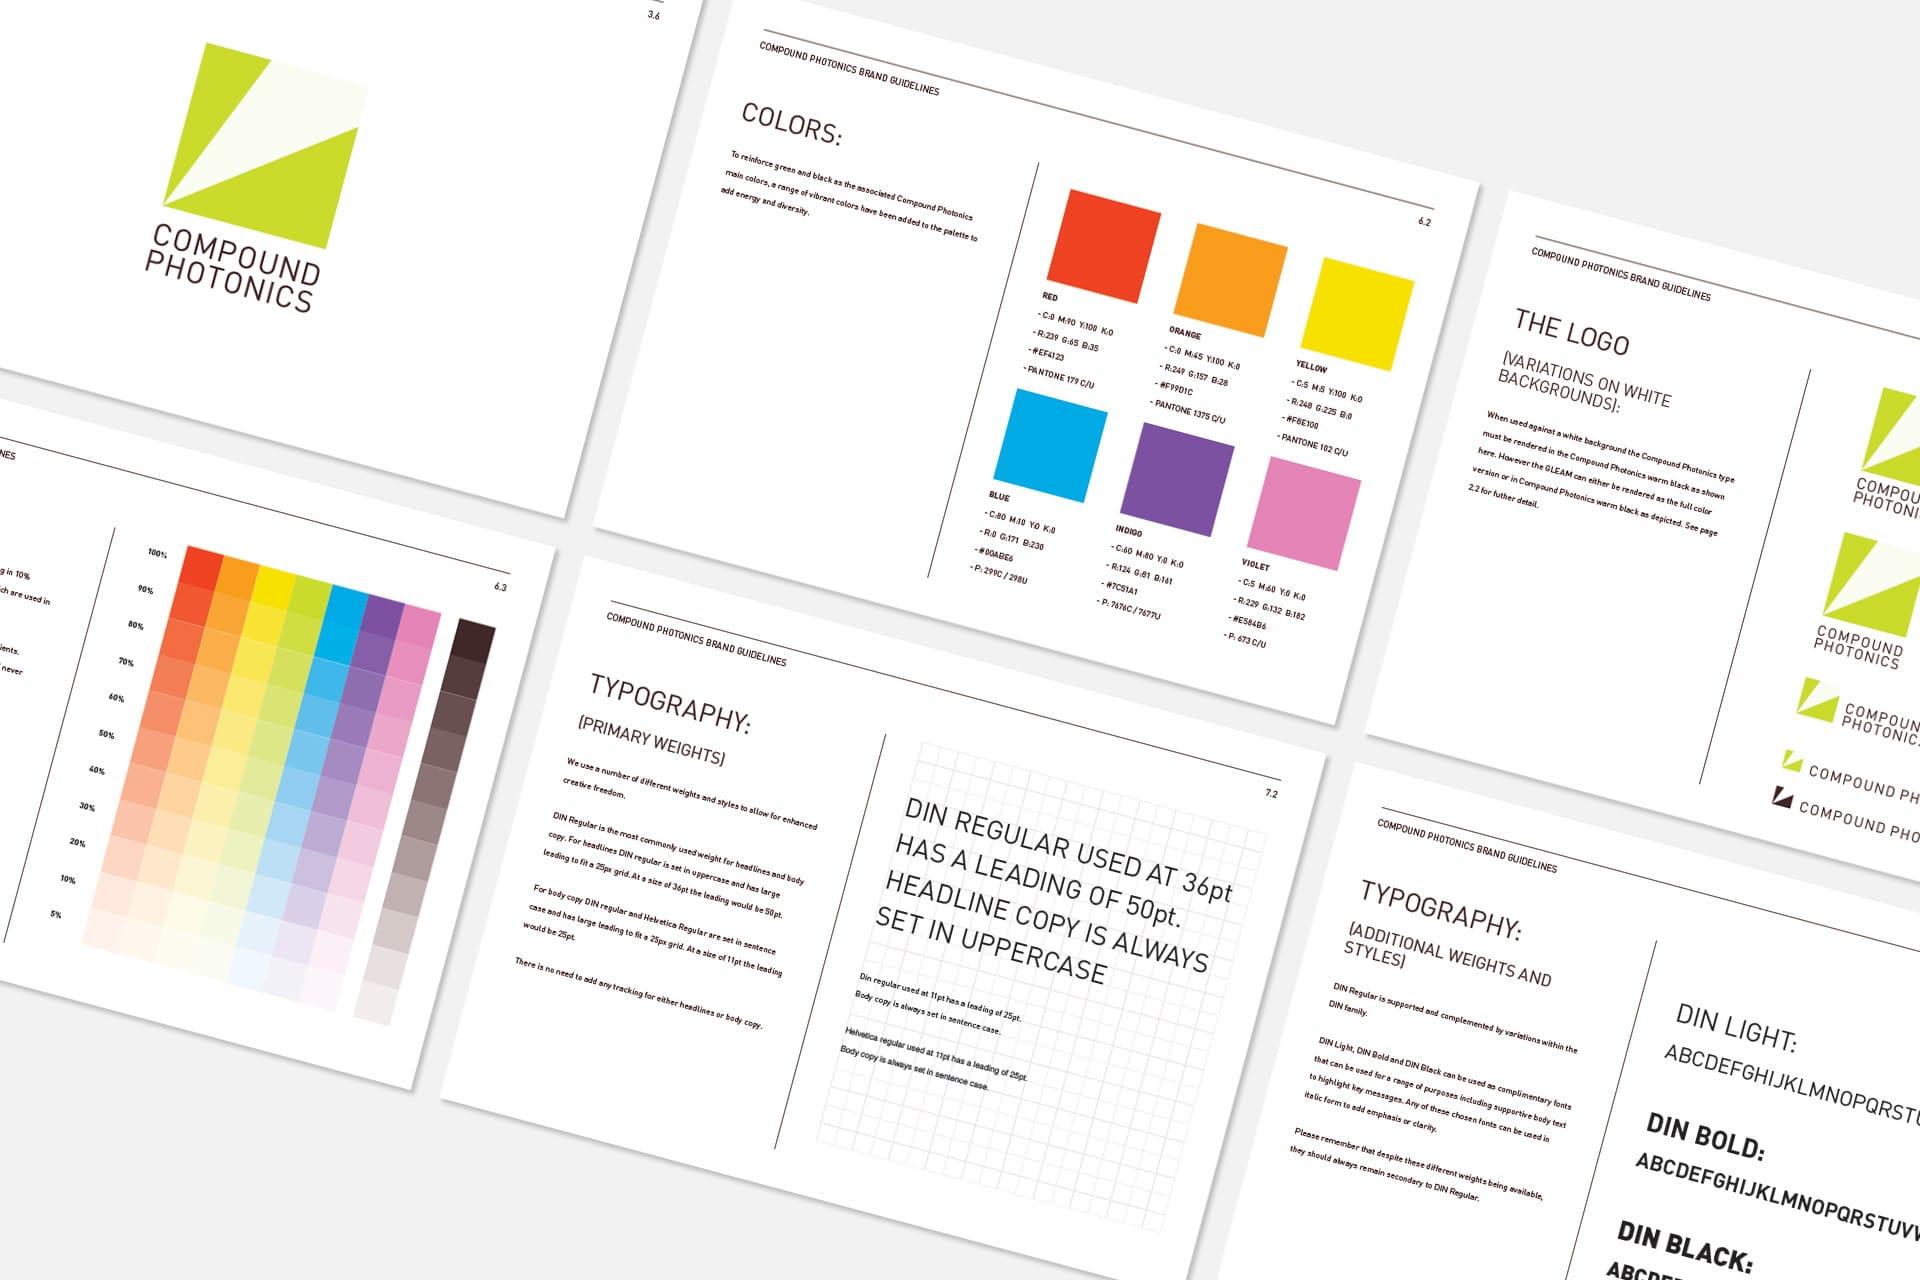 Compound Photonics: Branding & Website - Brand guidelines